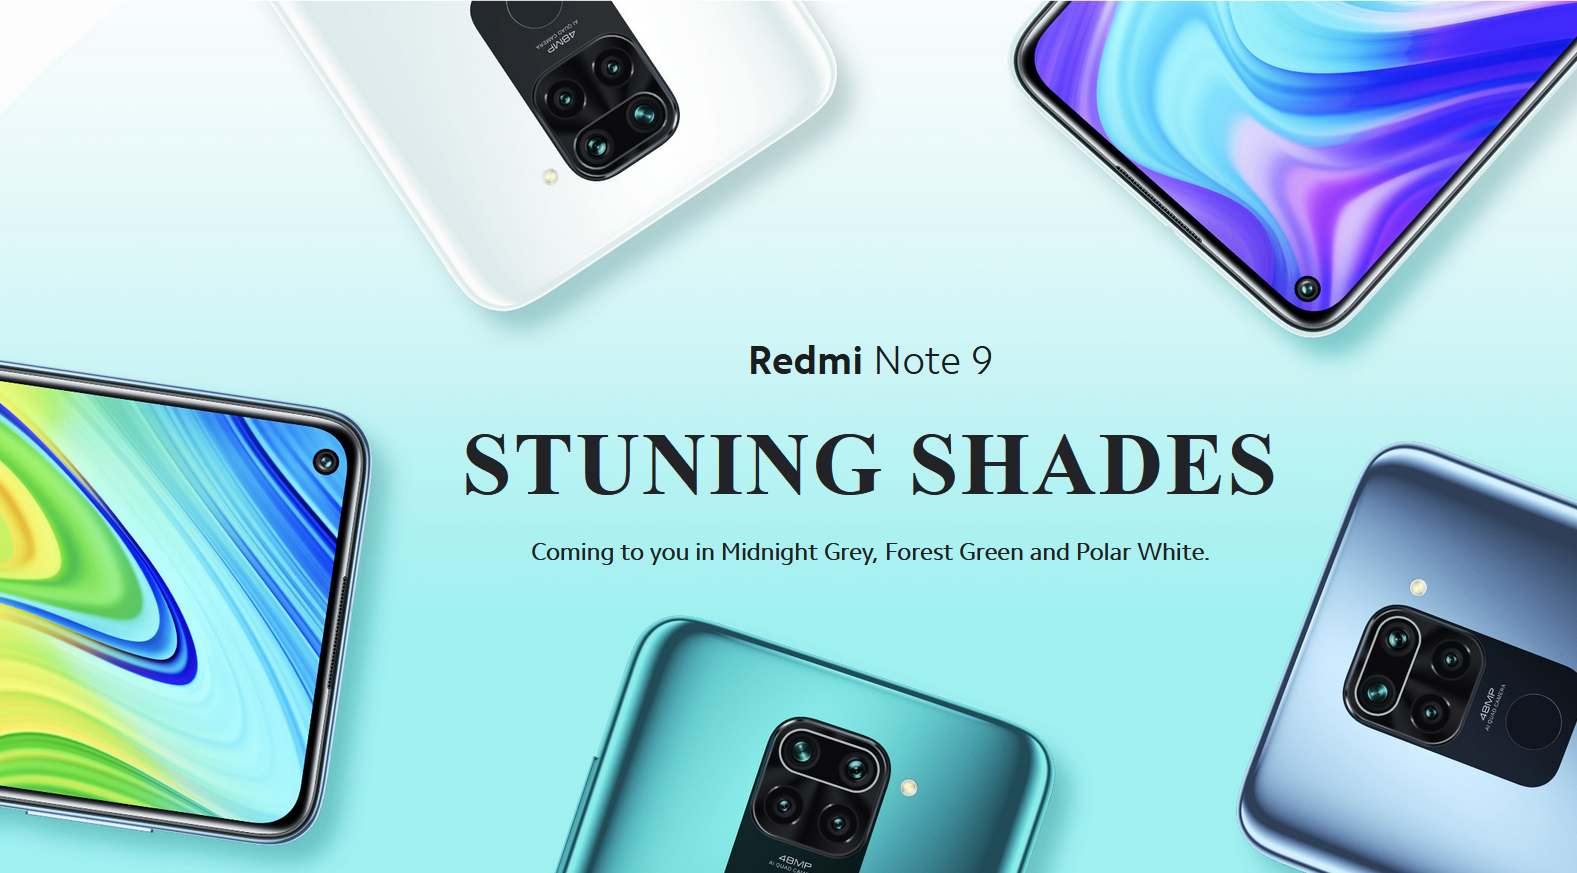 https://delshop.bg/image/catalog/Xiaomi/Phones/2020/Redmi%20note%209.png